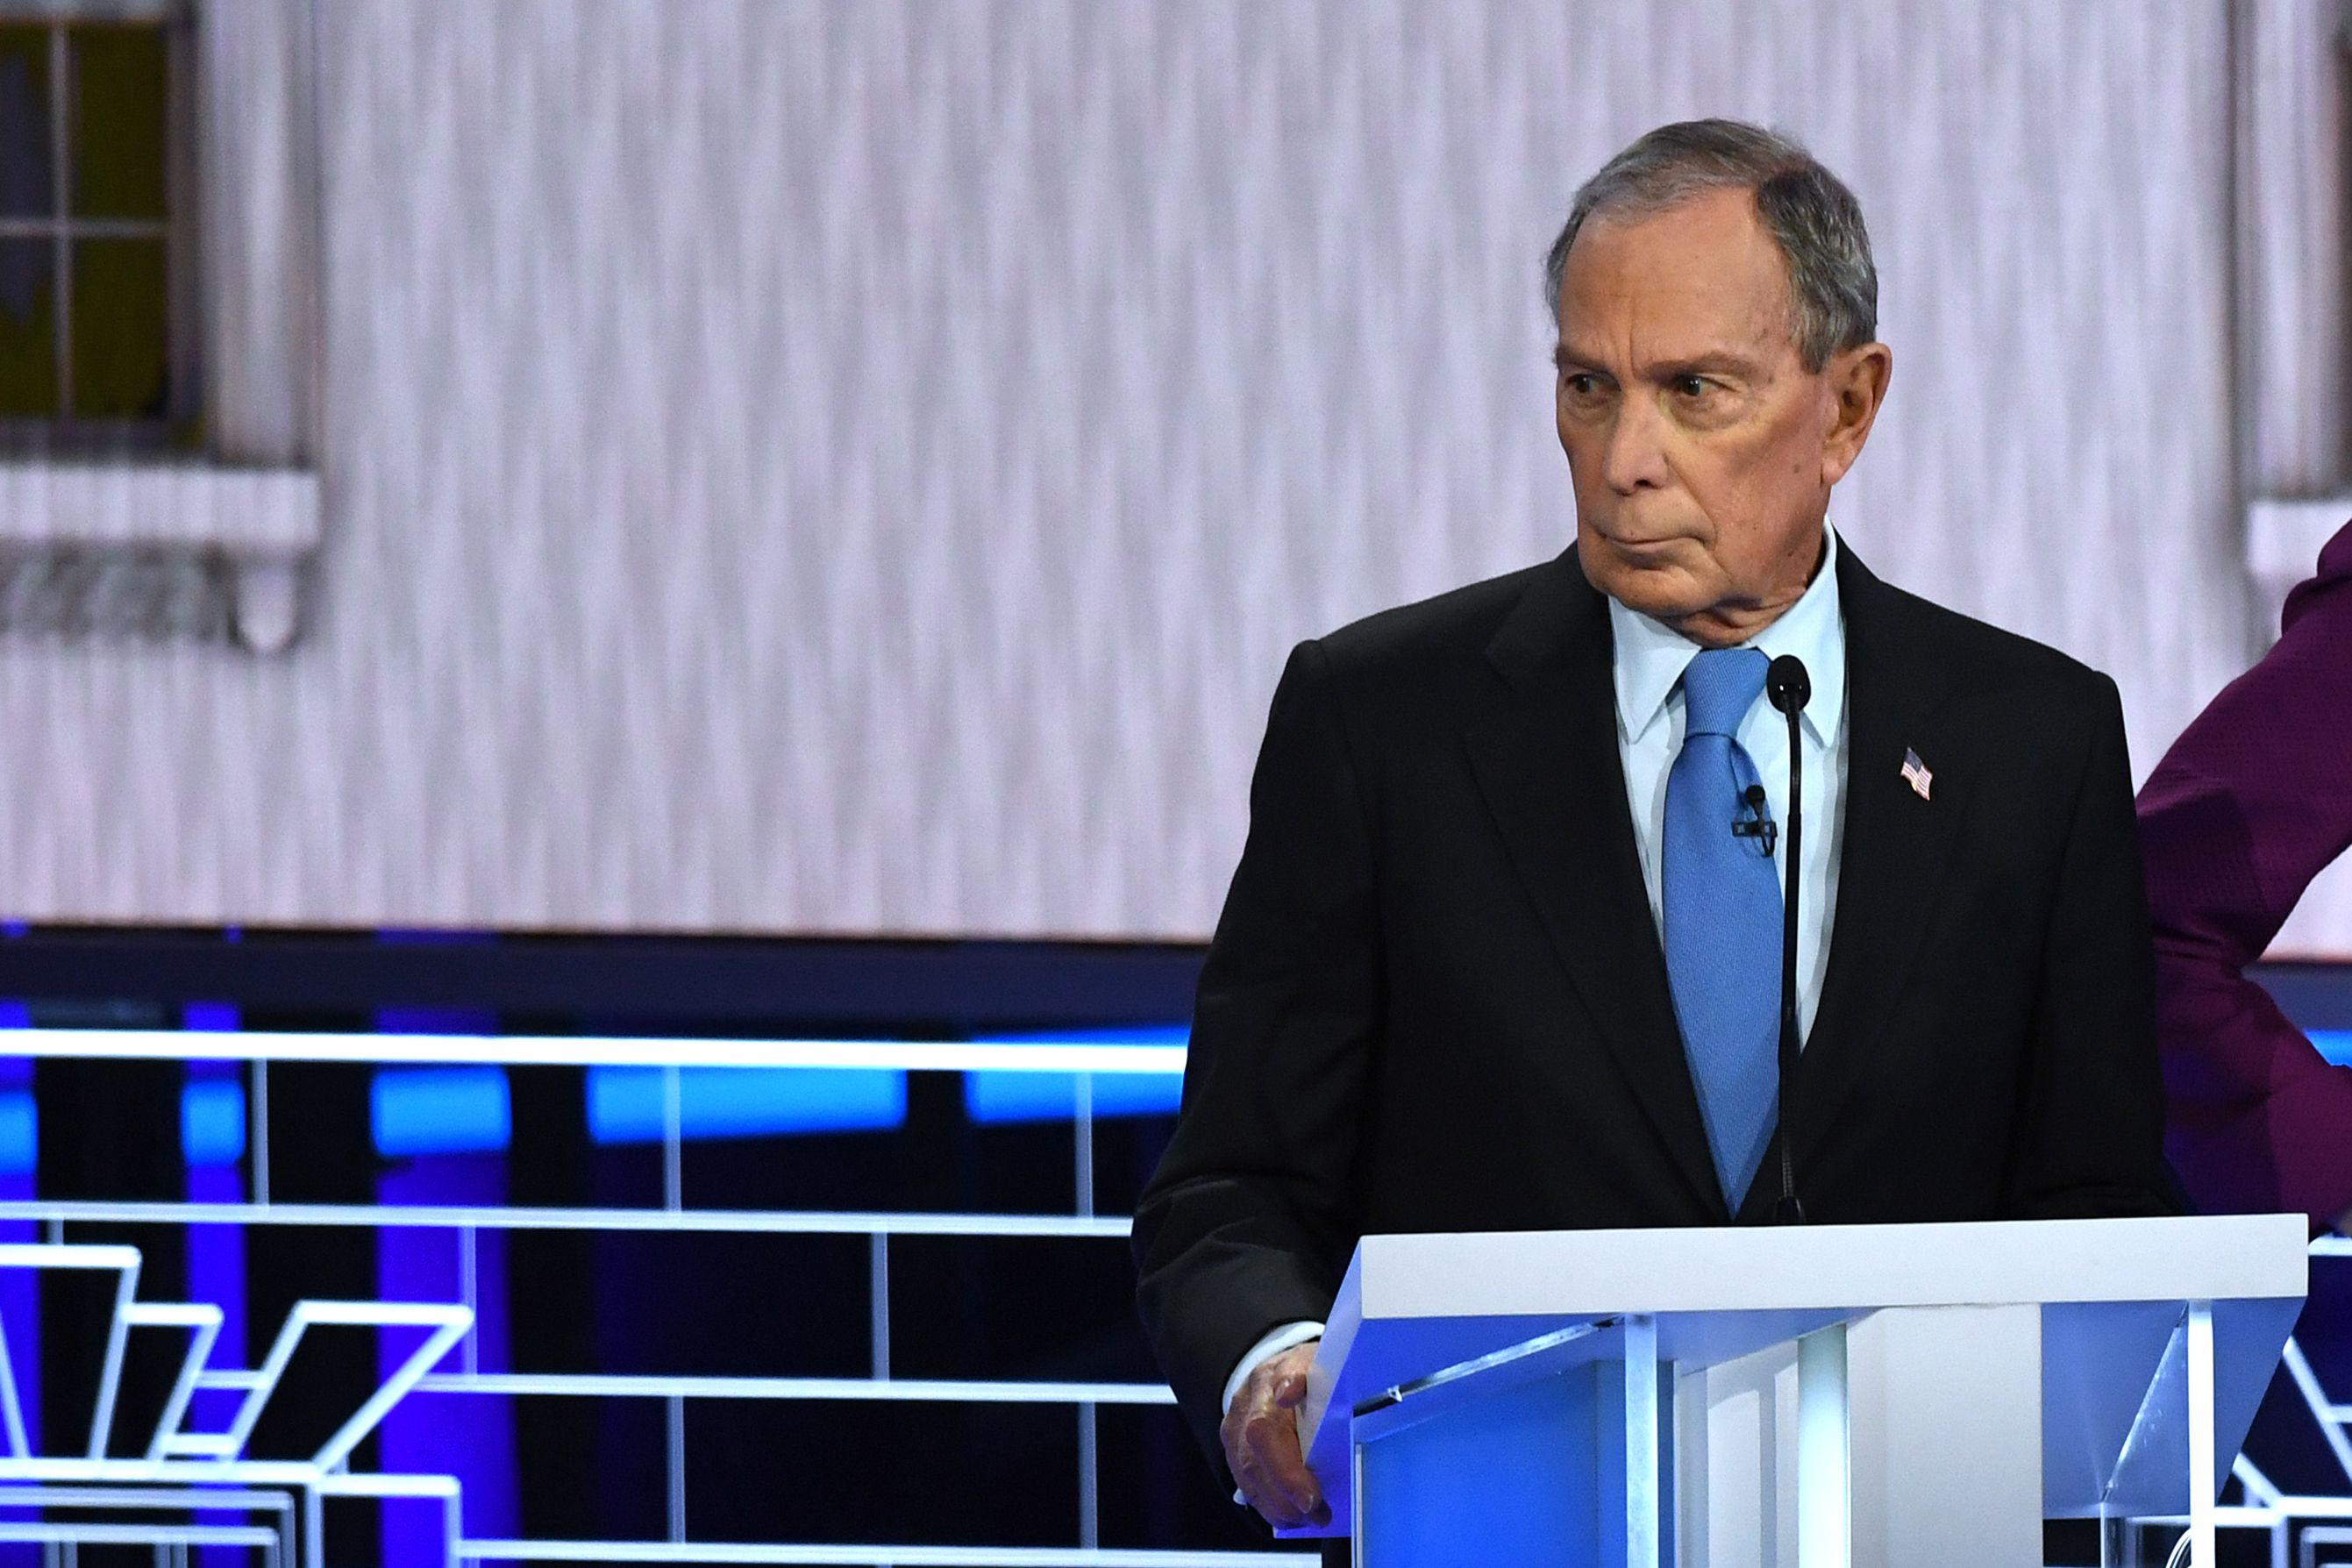 """Judge who presided over """"stop-and-frisk"""" case says Bloomberg got it wrong on debate night - Axios"""